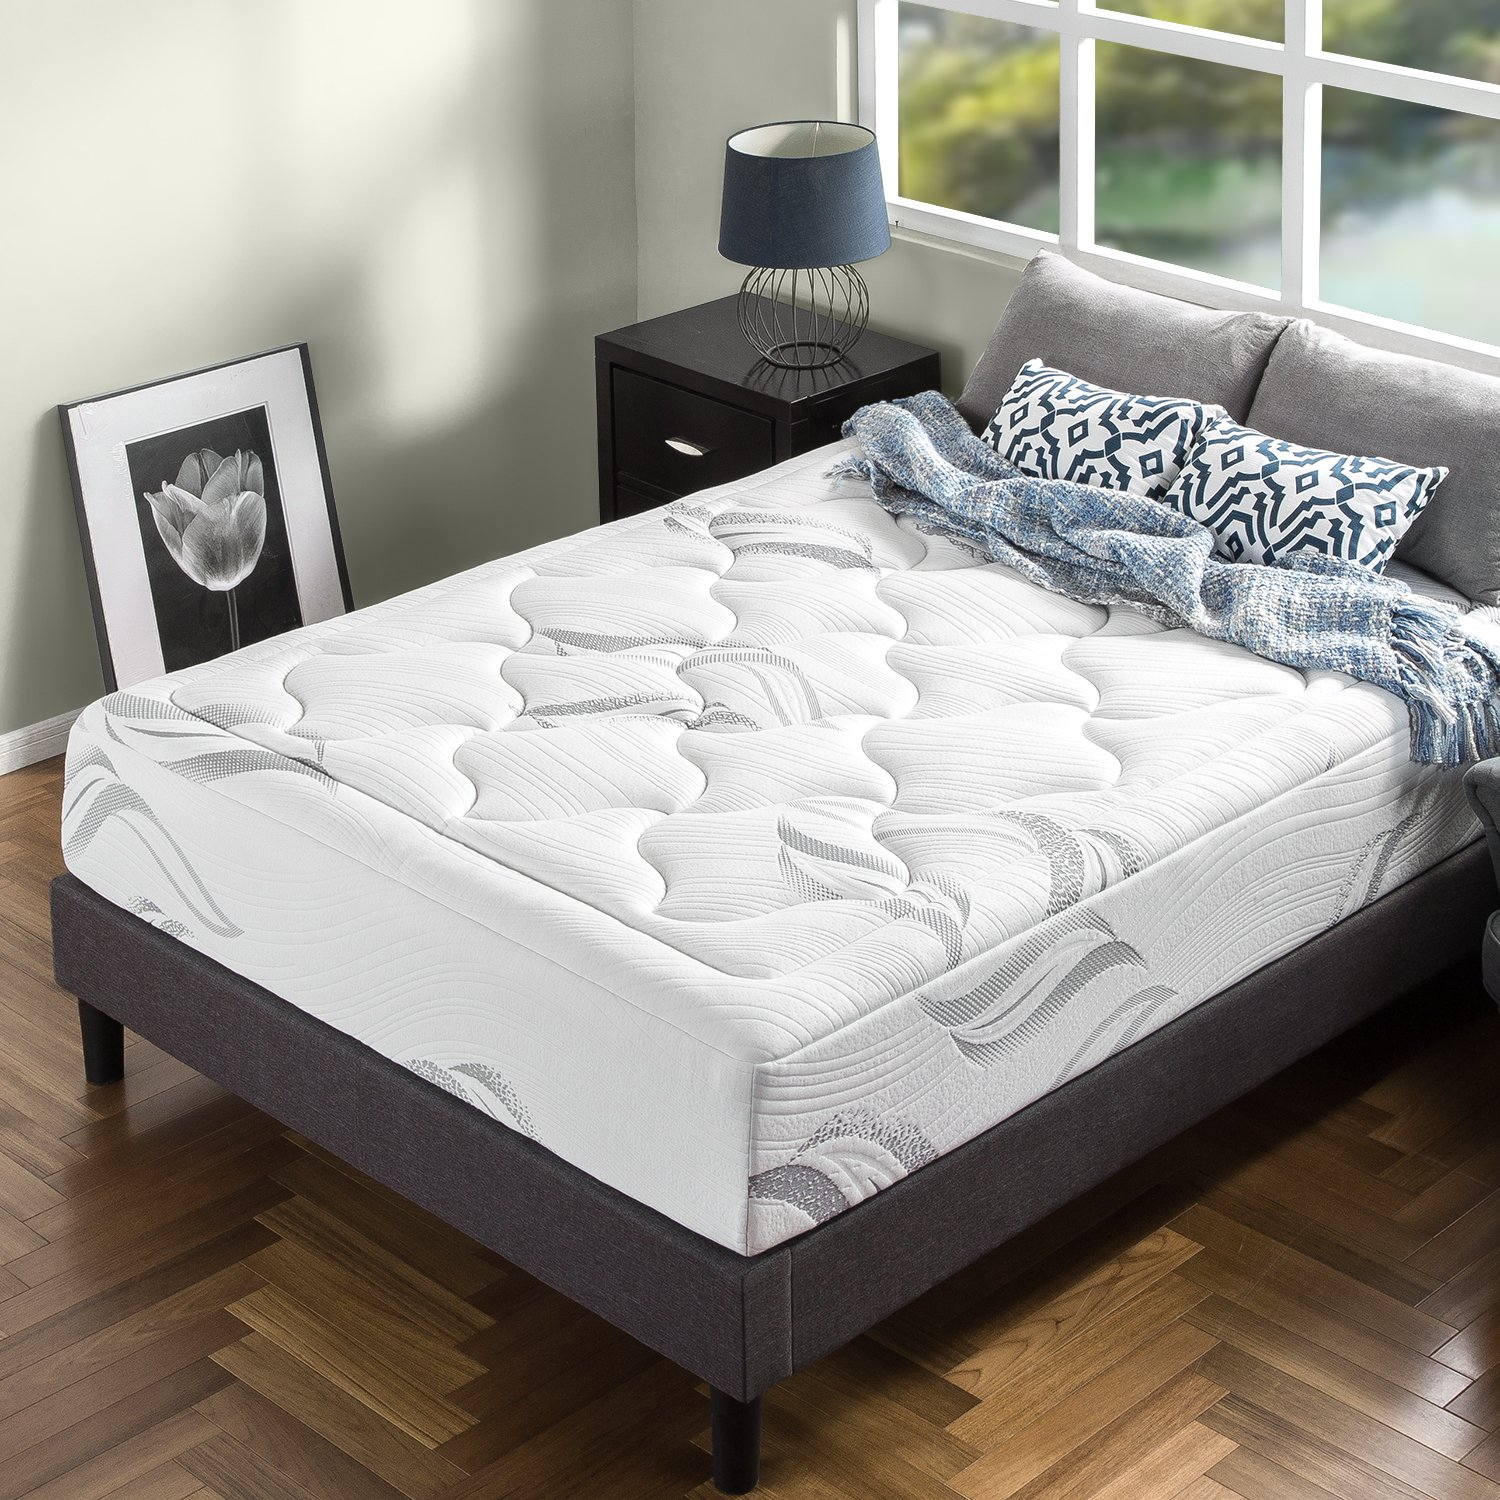 Amazon com  Zinus Memory Foam 12 Inch   Premium   Cloud like Mattress   Queen  Kitchen   Dining. Amazon com  Zinus Memory Foam 12 Inch   Premium   Cloud like